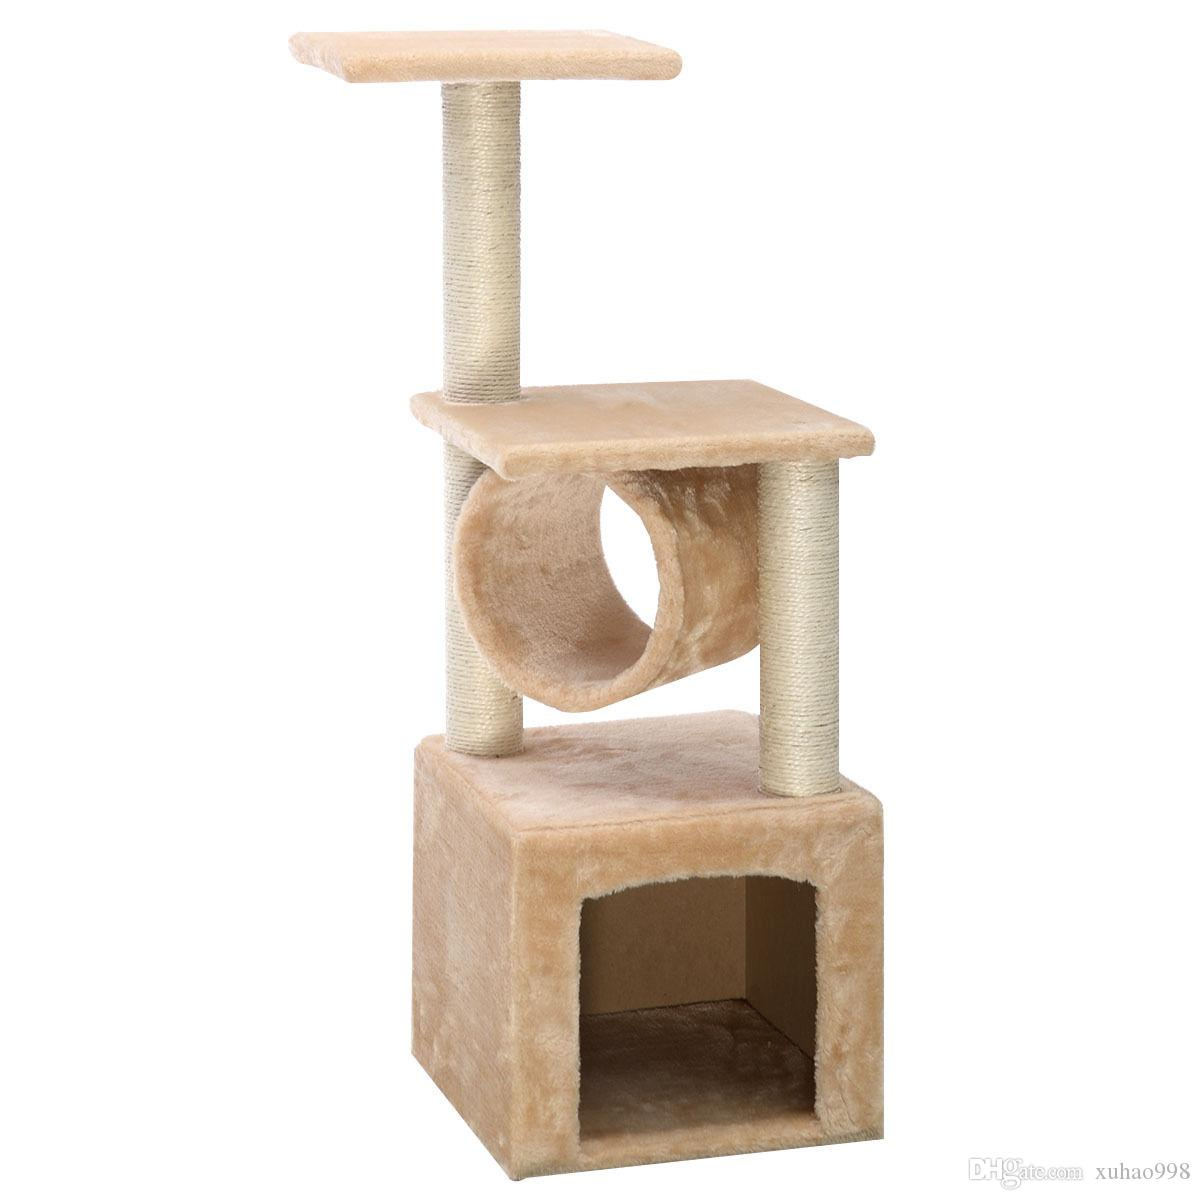 "Deluxe 36"" Cat Tree Condo Furniture Play Toy Scratch Post Kitten Pet House Beige"